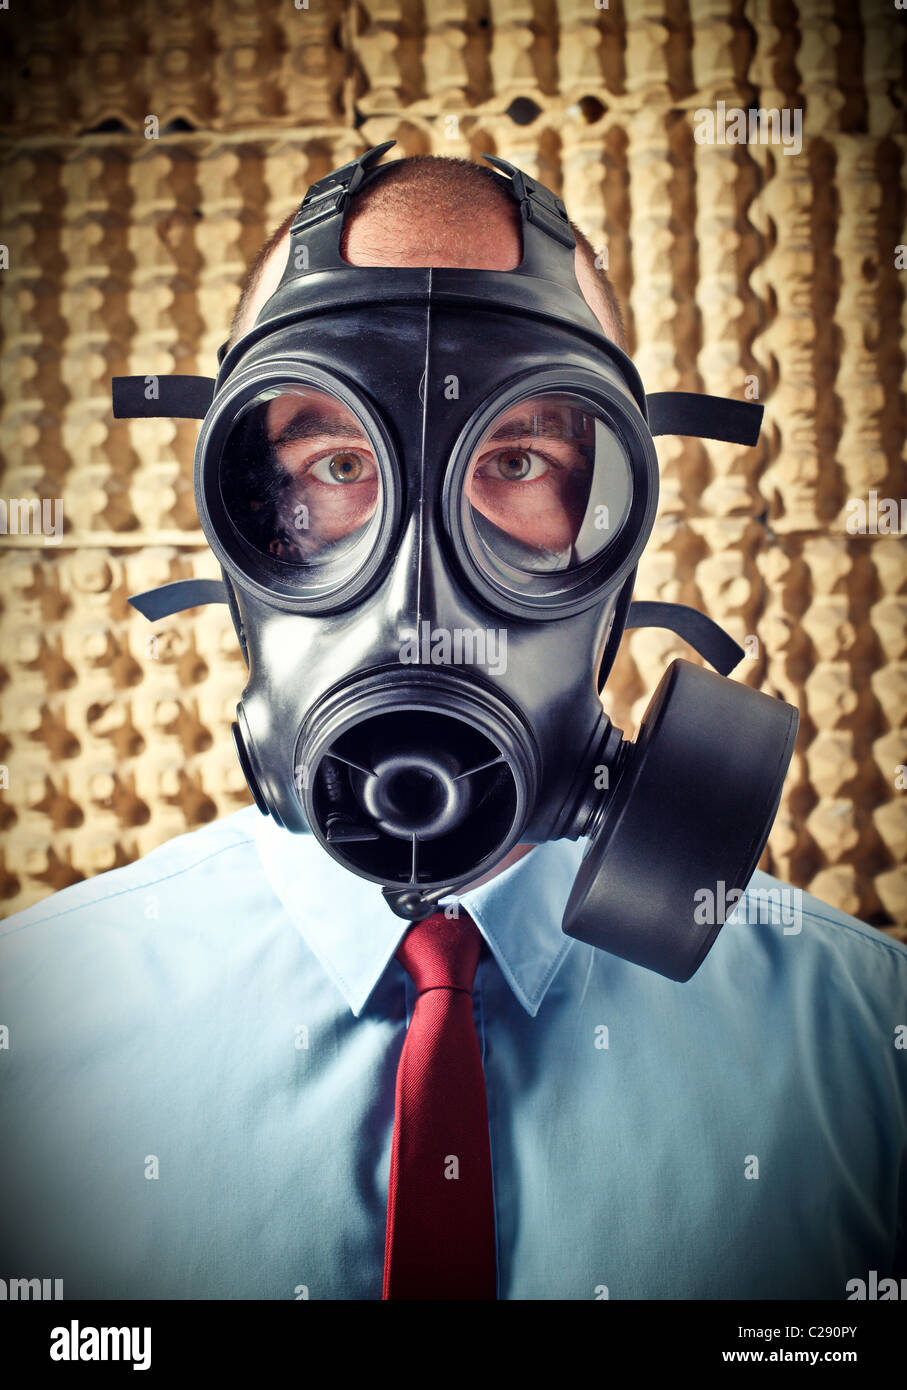 portrait of businessman wearing classic gas mask - Stock Image